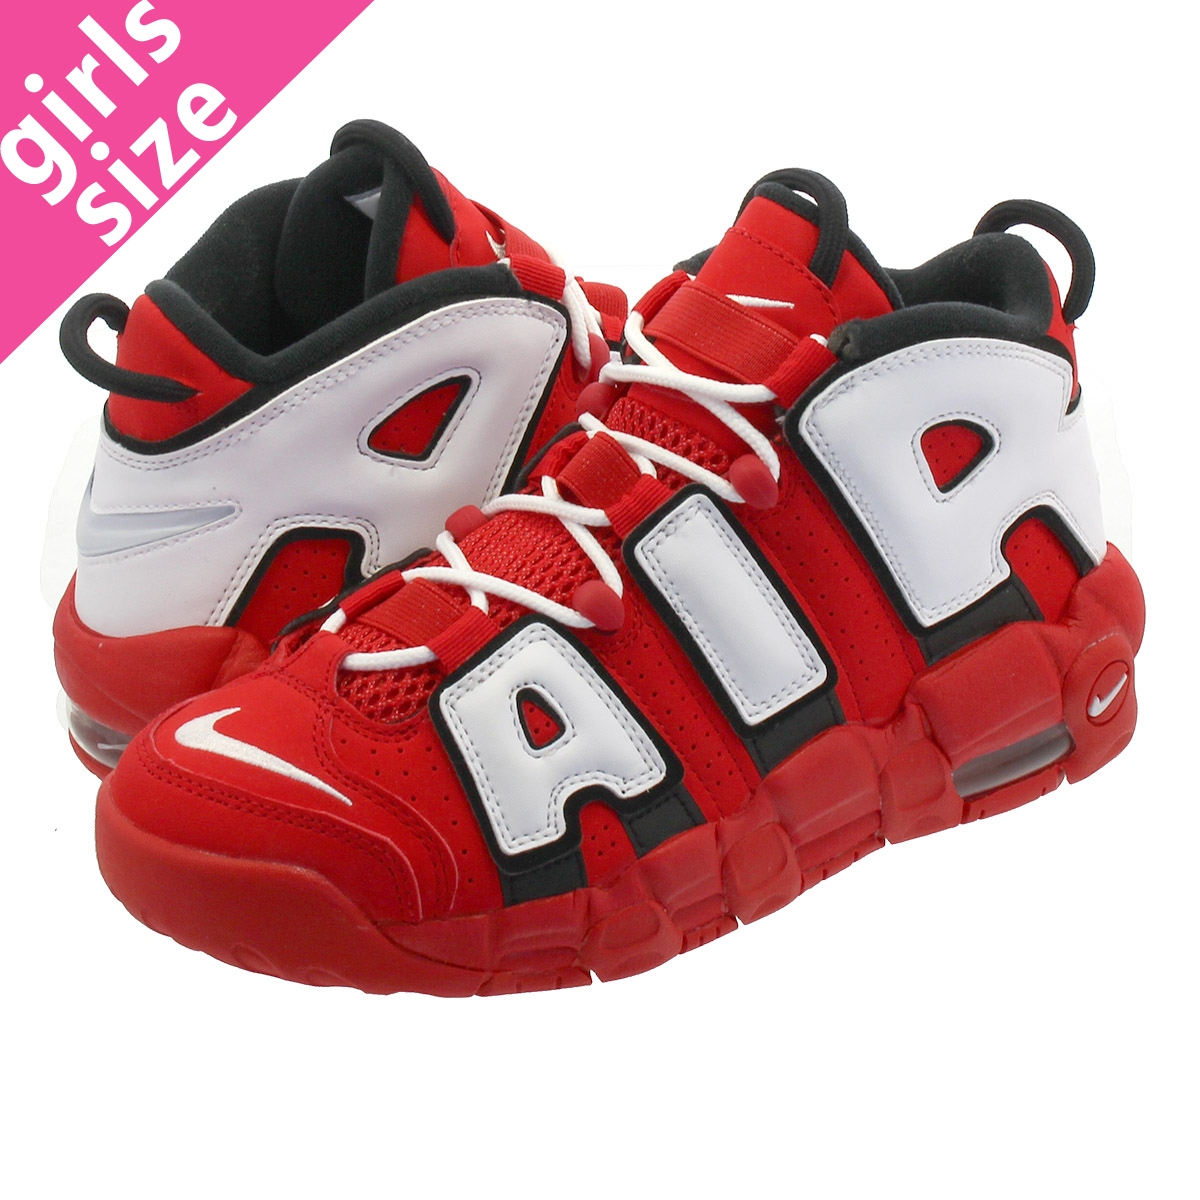 NIKE AIR MORE UPTEMPO GS Nike more up tempo GS UNIVERSITY REDWHITEBLACK cd9402 600